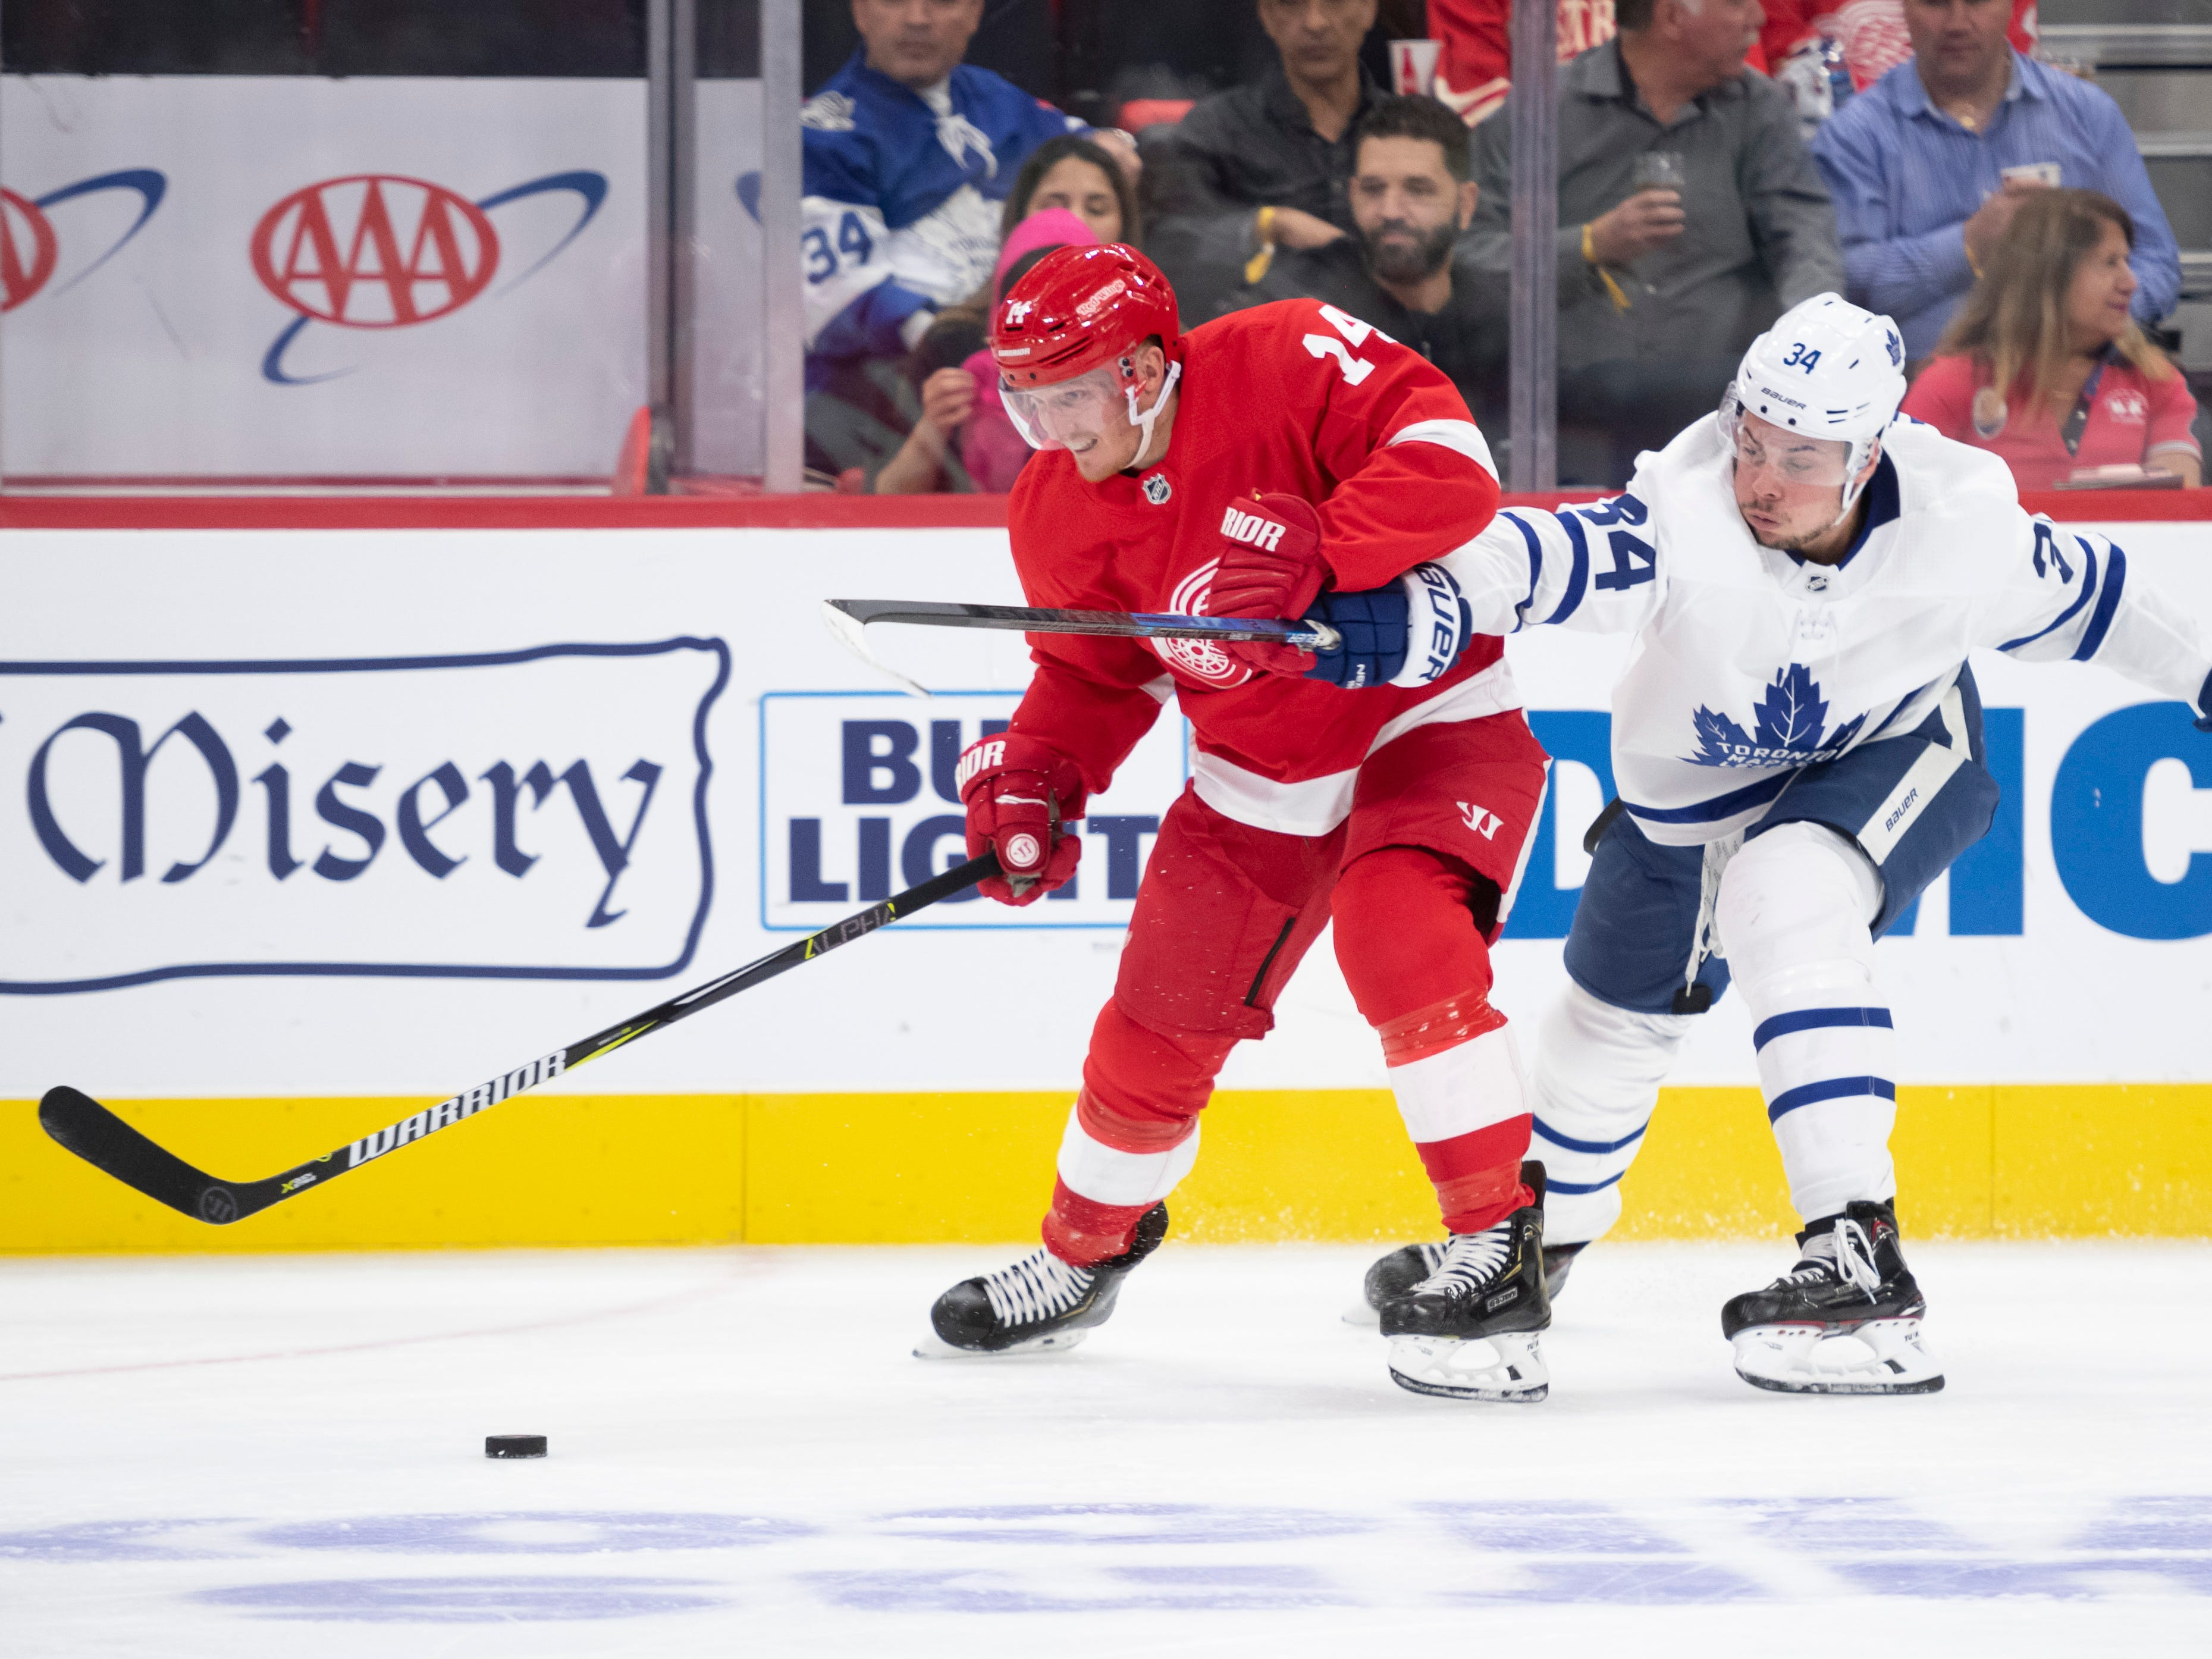 Toronto center Auston Matthews received a holding penalty on this play with Detroit center Gustav Nyquist the second period.